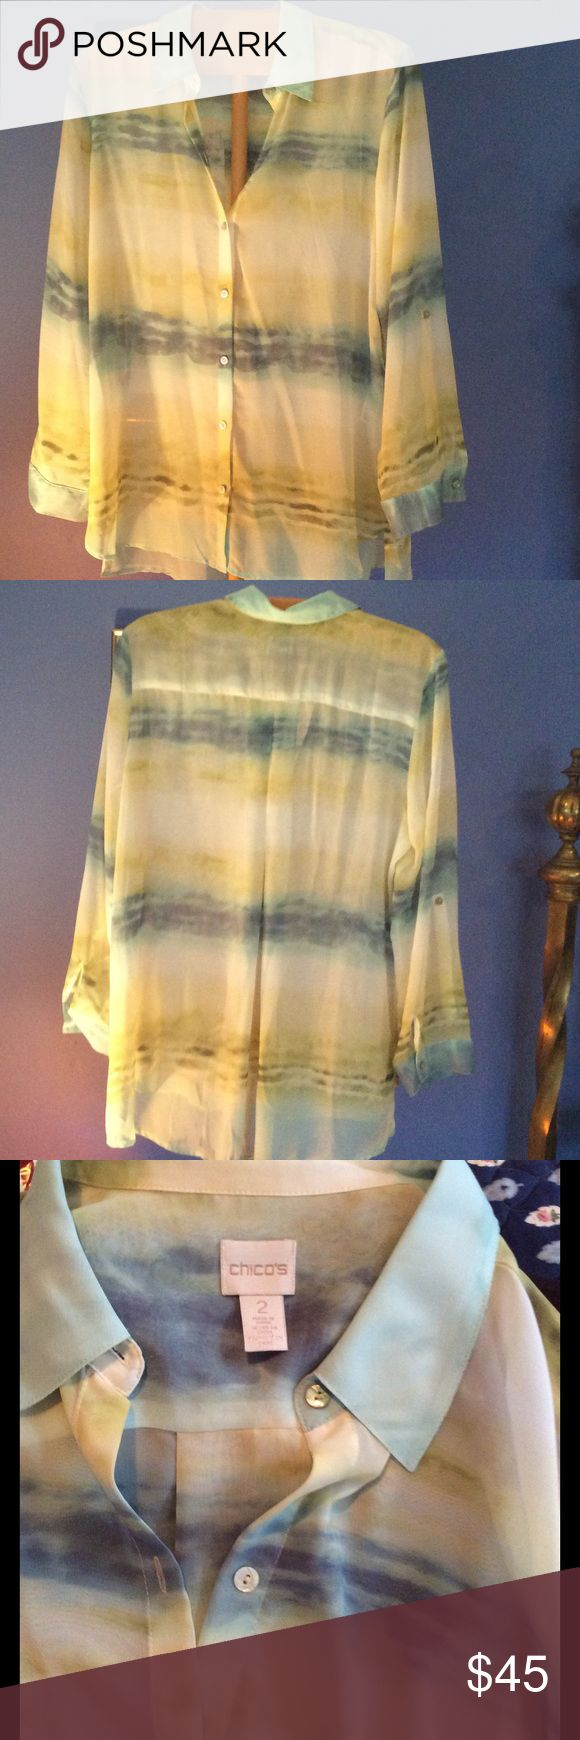 Chico's Flowing Tunic Blouse Such a pretty semi sheer long button up top with long sleeves and pleat in back. Shades of spring with Blue and Green Chico's Tops Tunics